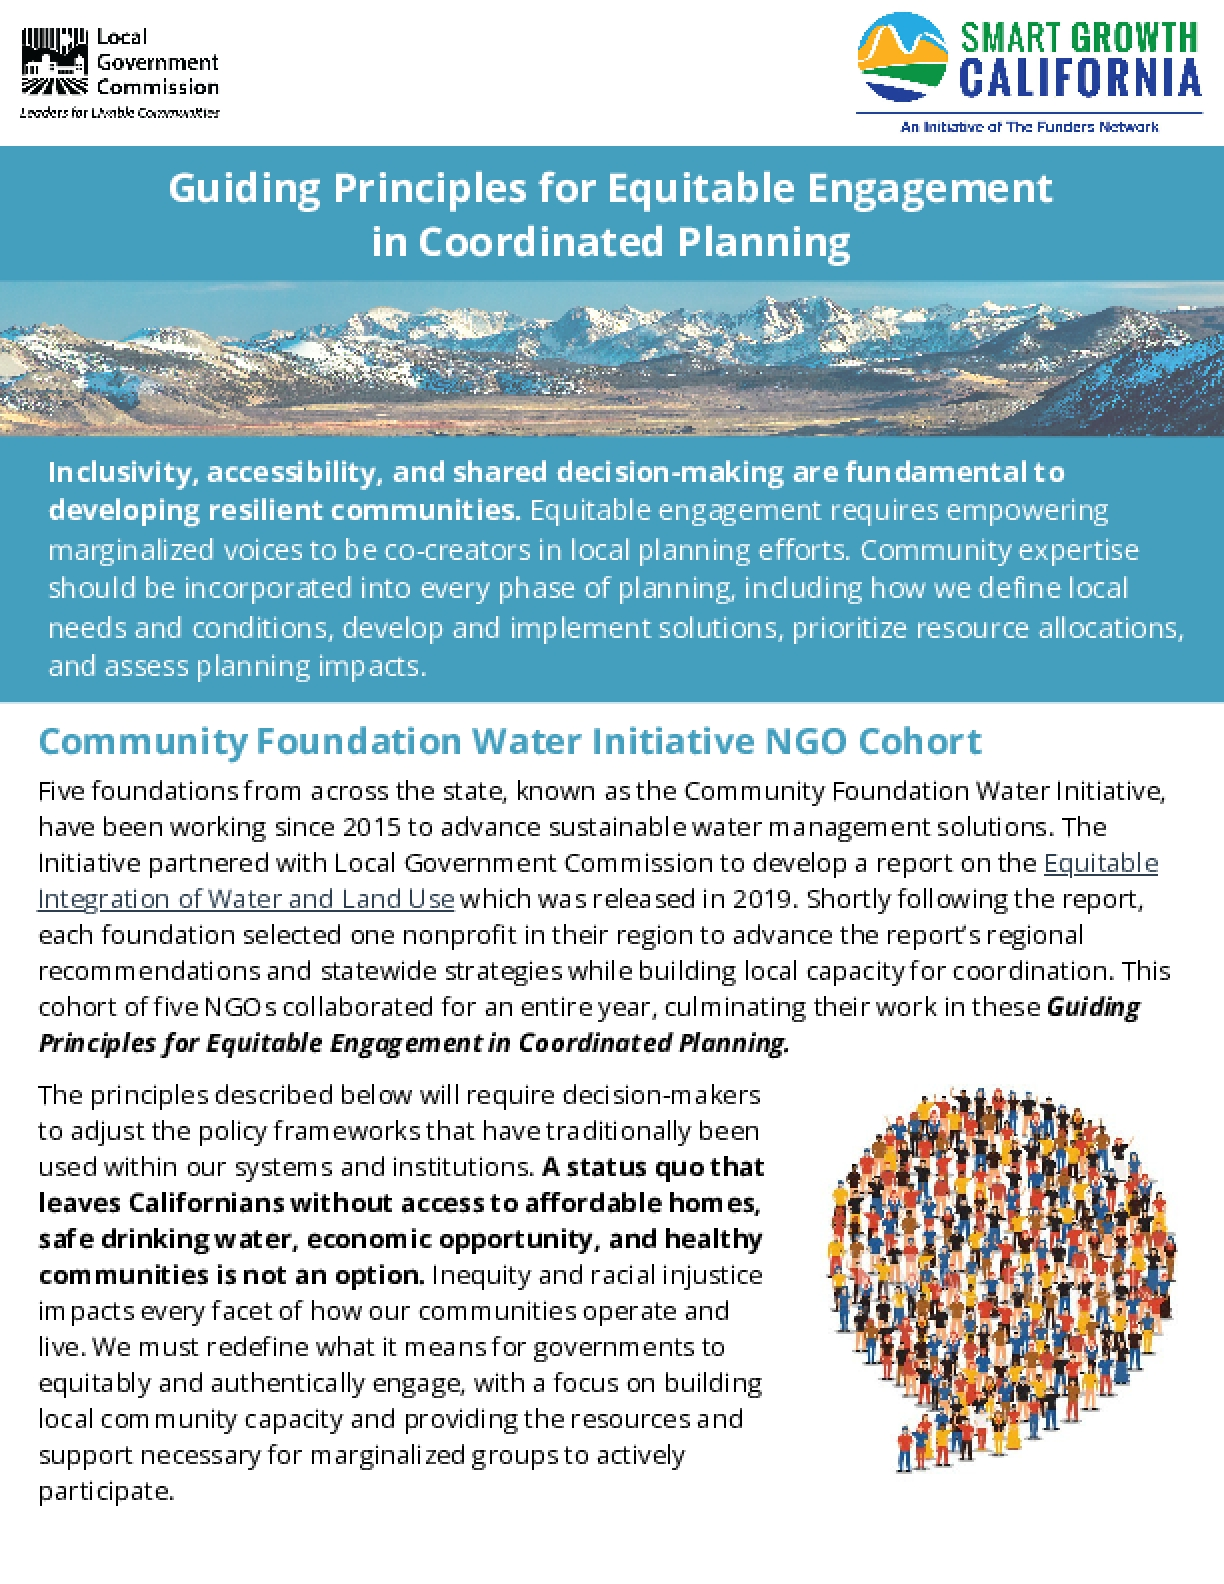 Guiding Principles for Equitable Engagement in Coordinated Planning